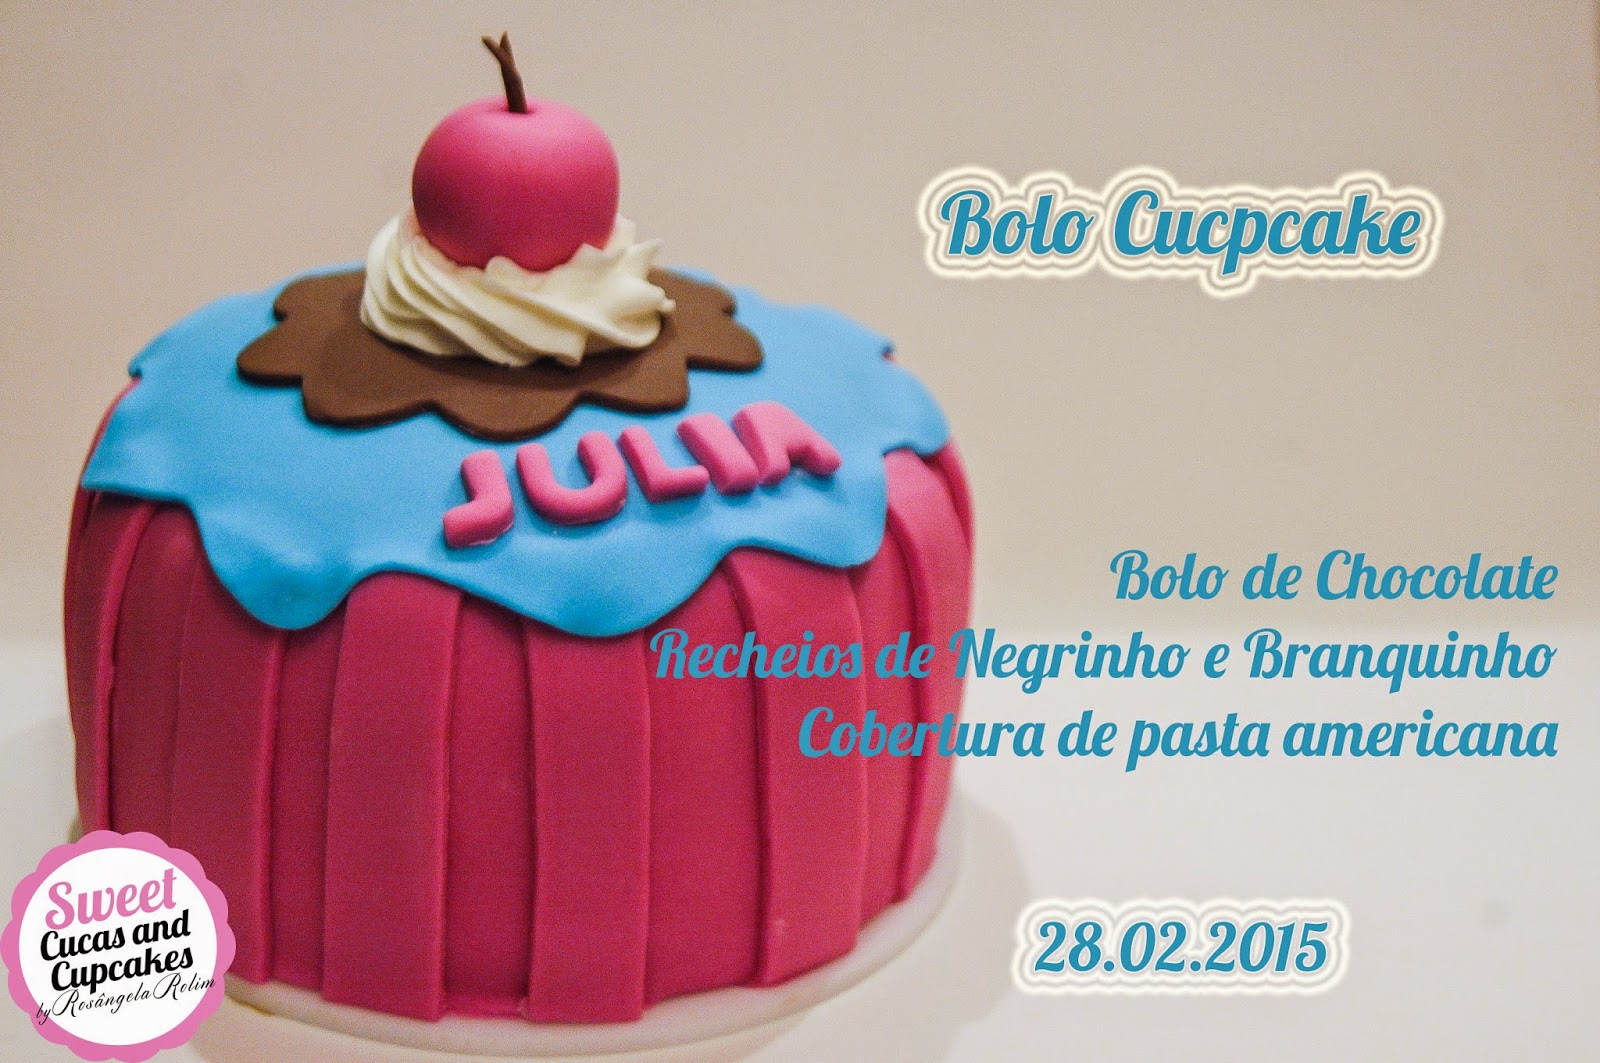 Sweet Cucas And Cupcakes By Rosângela Rolim Bolo Cupcake E Oficina